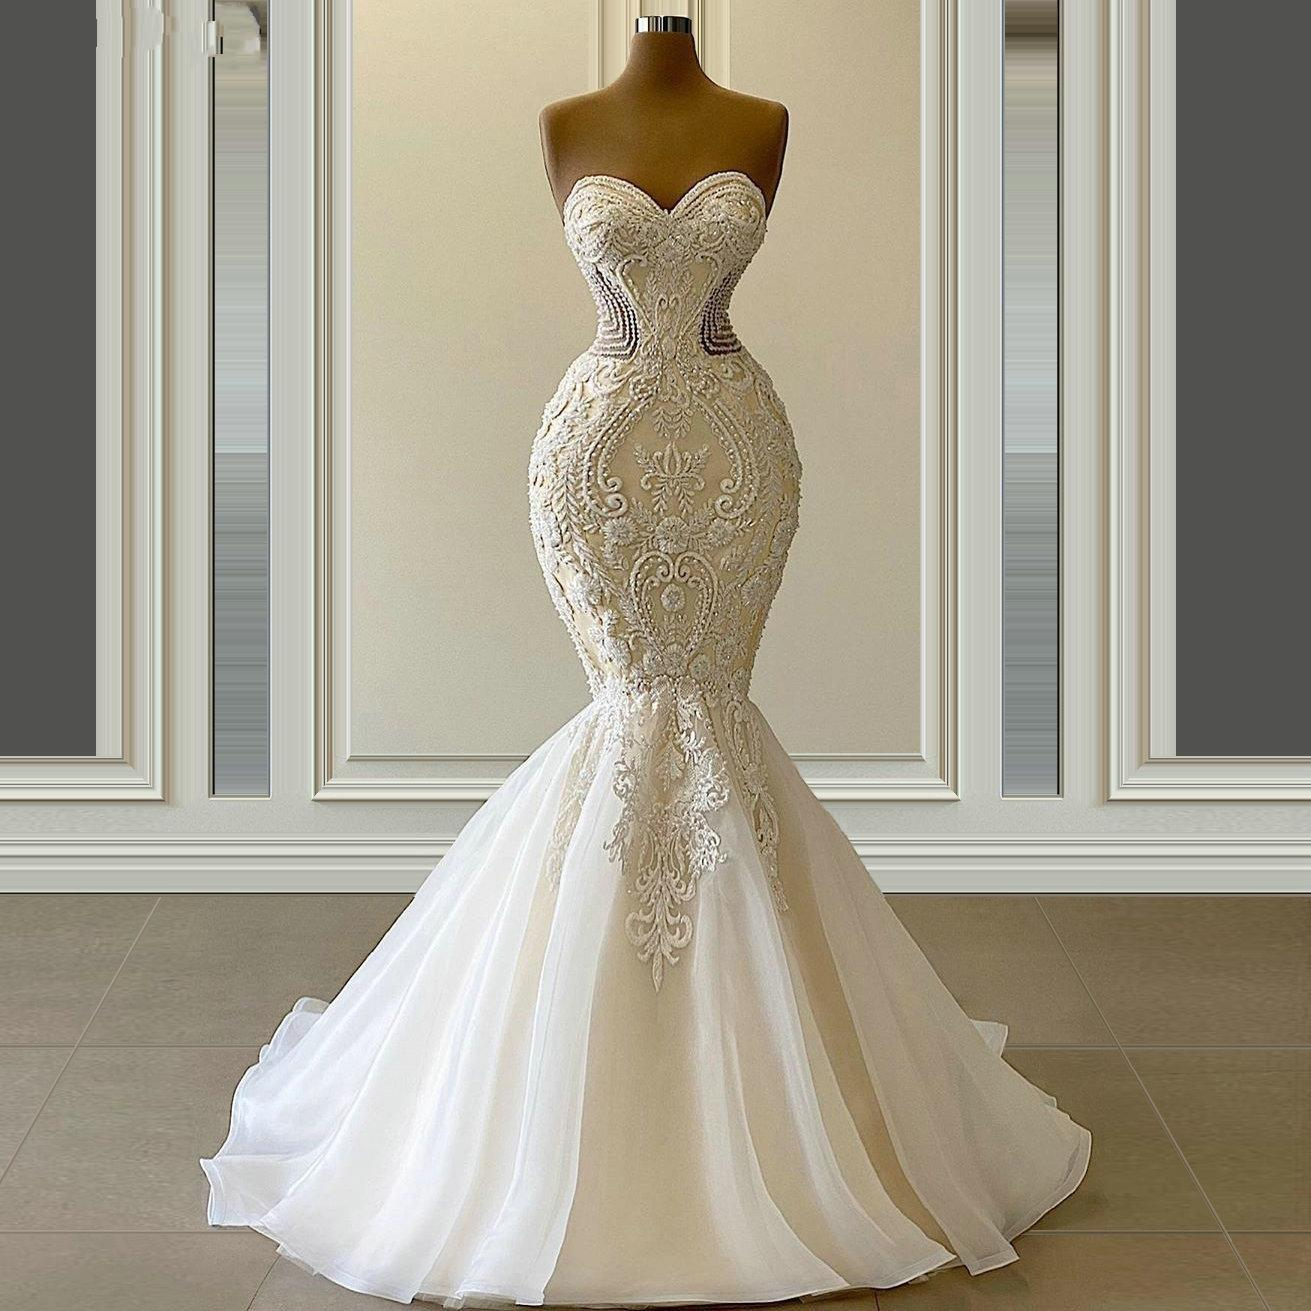 2021 Vestido De Novia Mermaid Wedding Dresses Formal Bridal Gowns Sweetheart Embroidery Lace Appliques Crystal Beads Luxury Illusion Sweep Train Plus Size